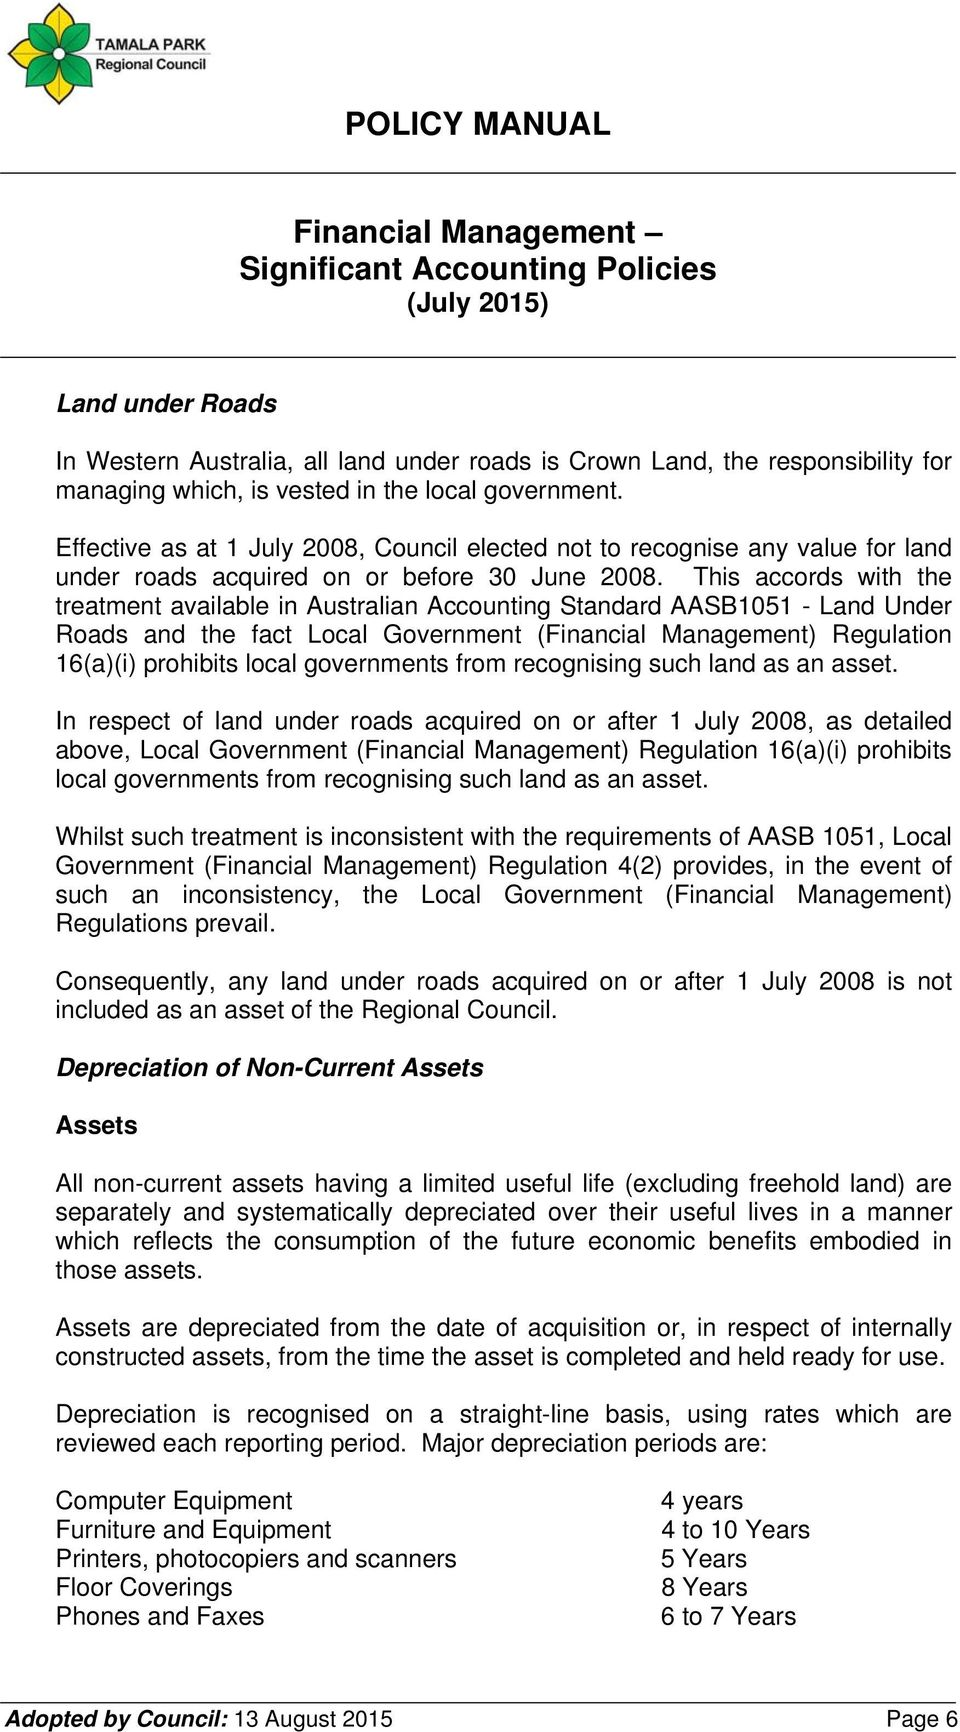 This accords with the treatment available in Australian Accounting Standard AASB1051 - Land Under Roads and the fact Local Government (Financial Management) Regulation 16(a)(i) prohibits local